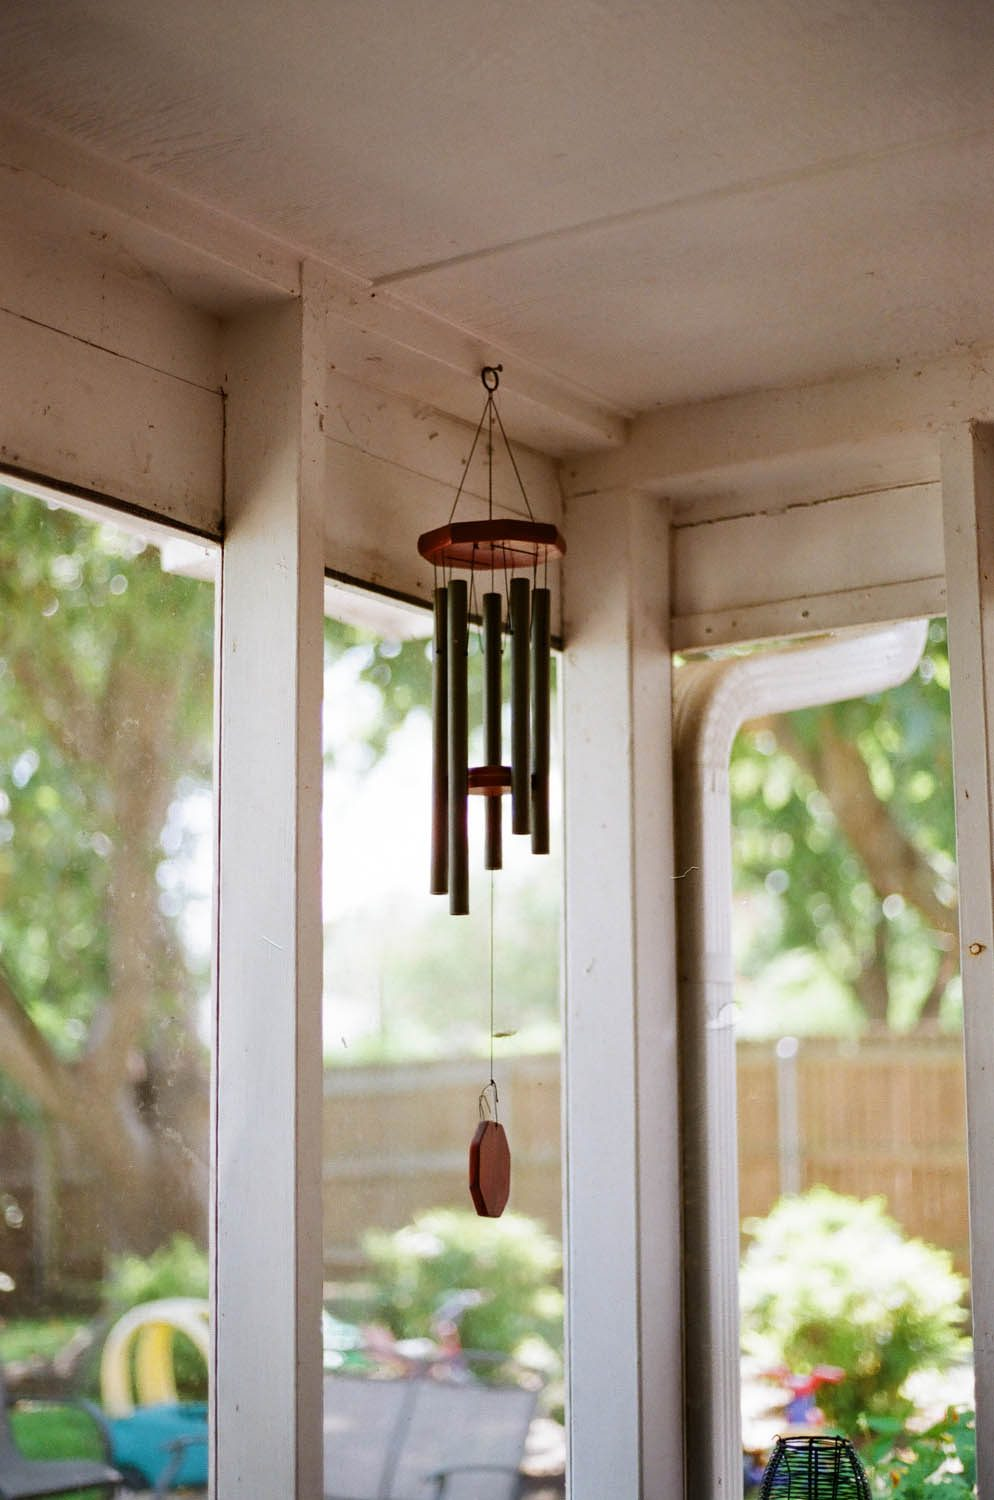 A windchime at my friend's house. Shot at 200, developed at 320 by the Darkroom.